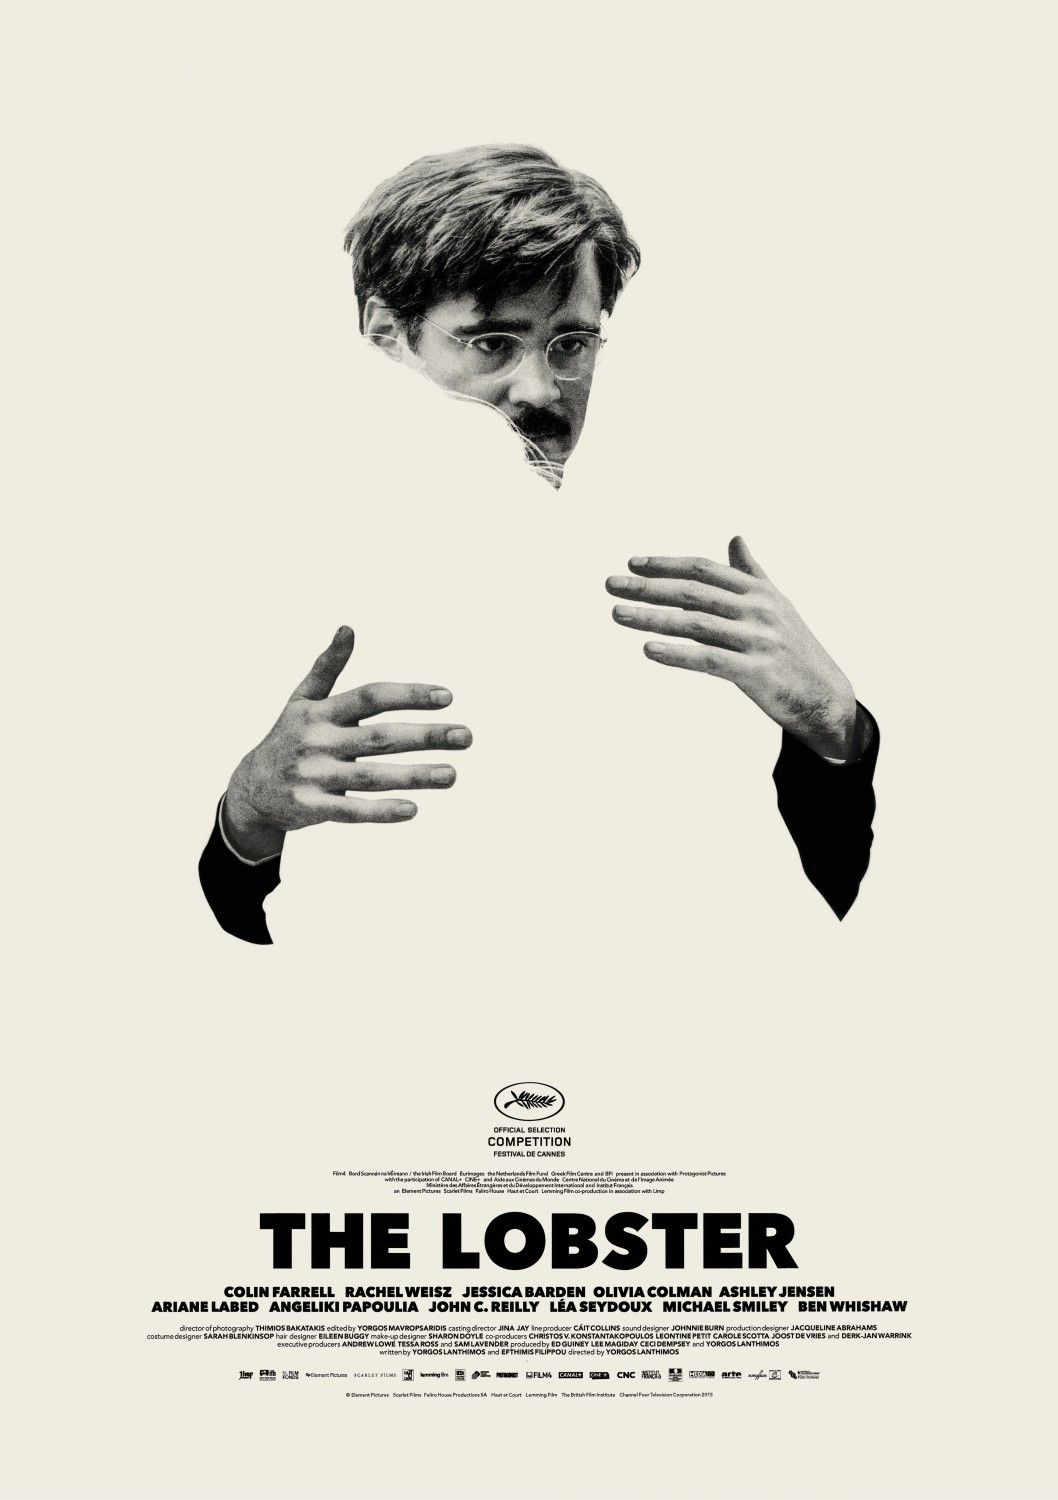 Return to the main poster page for The Lobster